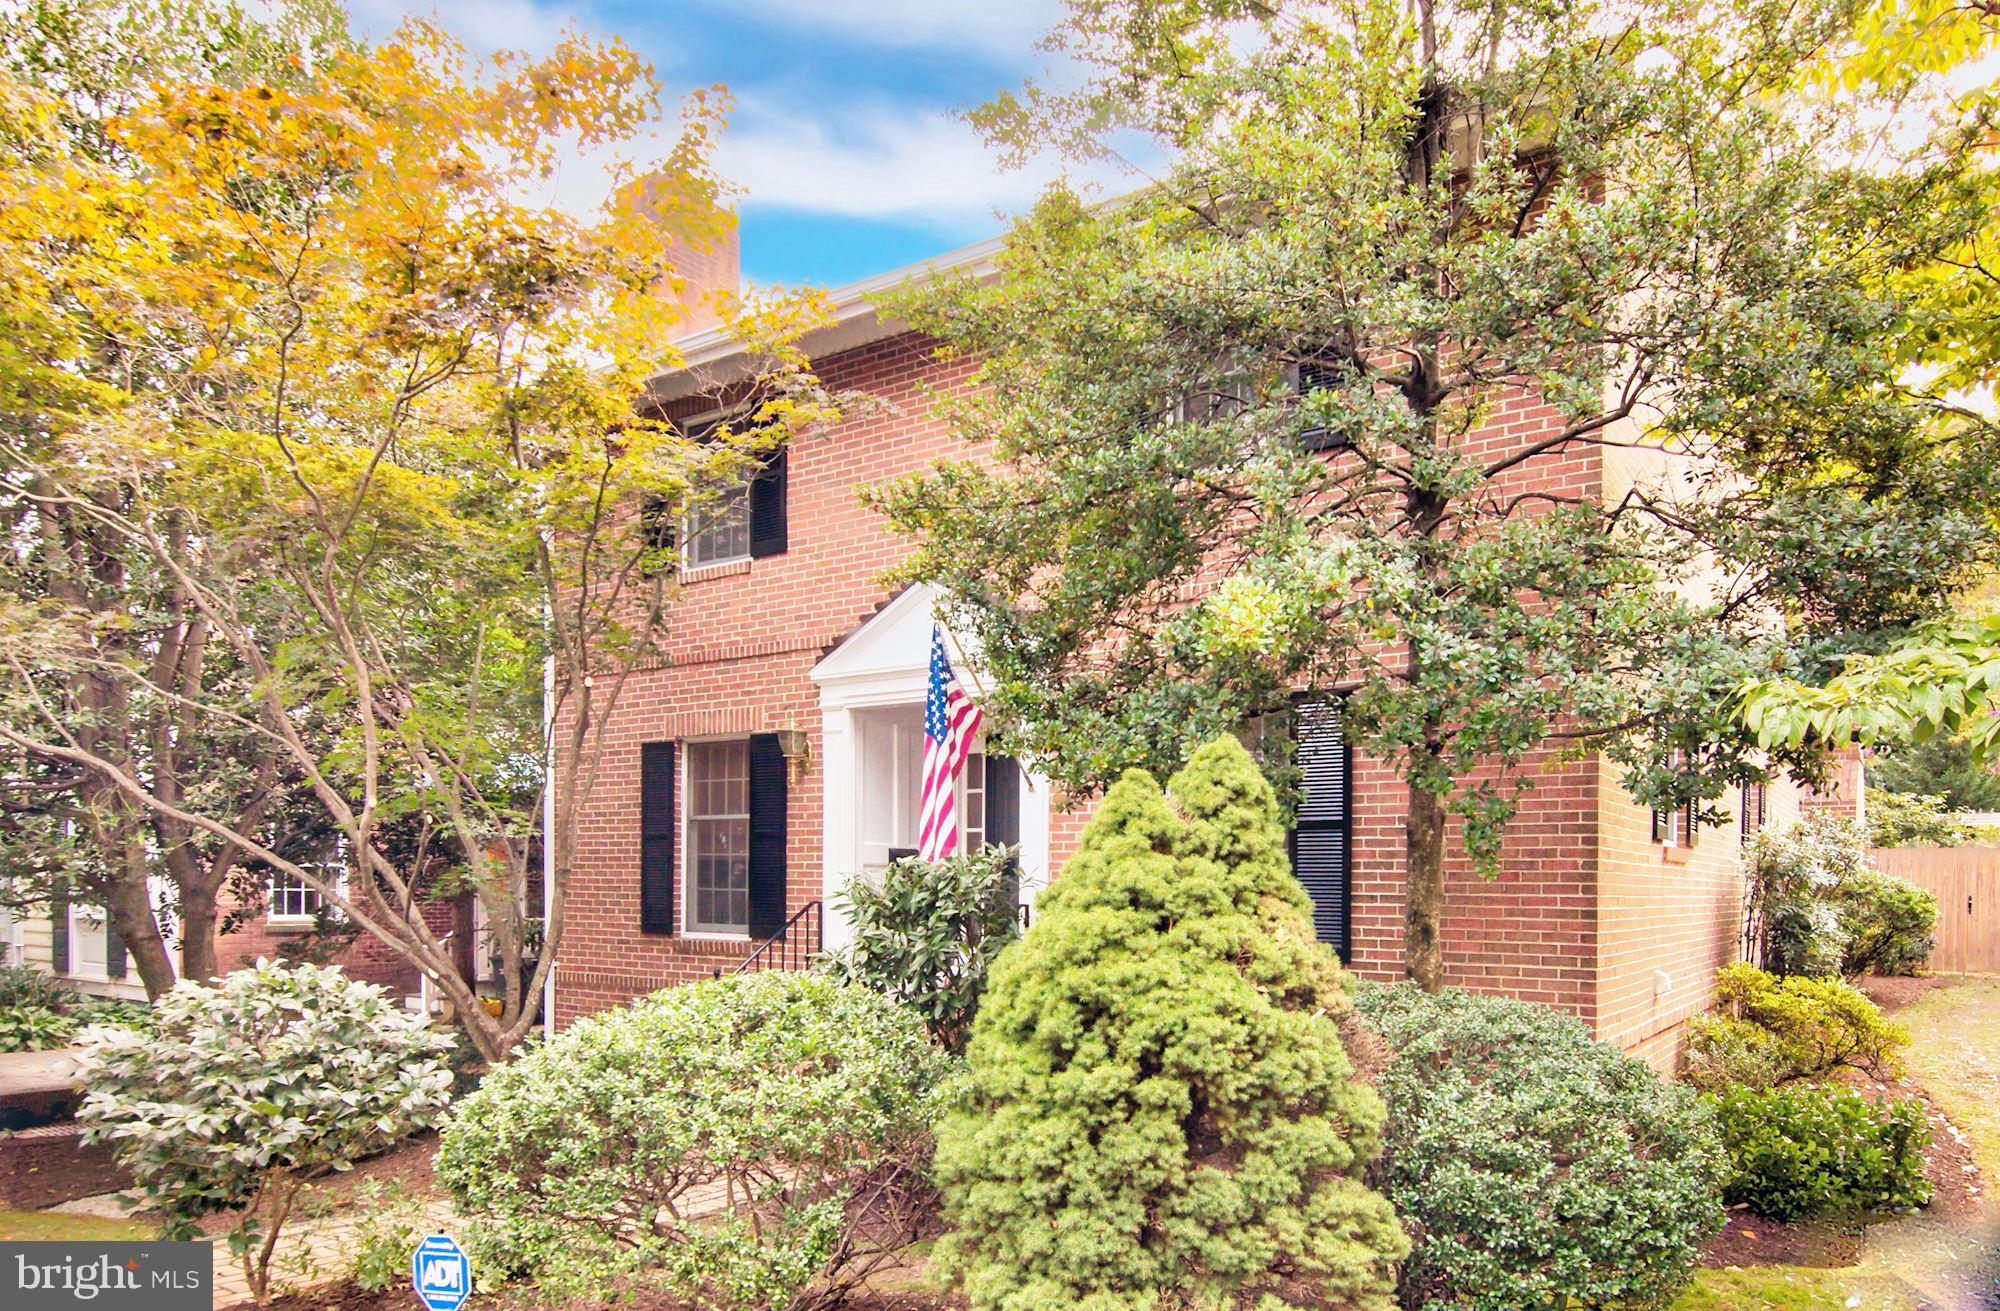 Charming brick colonial near Braddock Metro Station. Seize the opportunity to own this well-appointed 4 bedroom home in Braddock Heights, Alexandria, VA. This well-situated detached residence offers rich hardwood floors throughout the main floor, a large living room with an elegant fireplace, separate dining room, a comfortable recreation room with fireplace, vaulted ceilings and tons of windows.